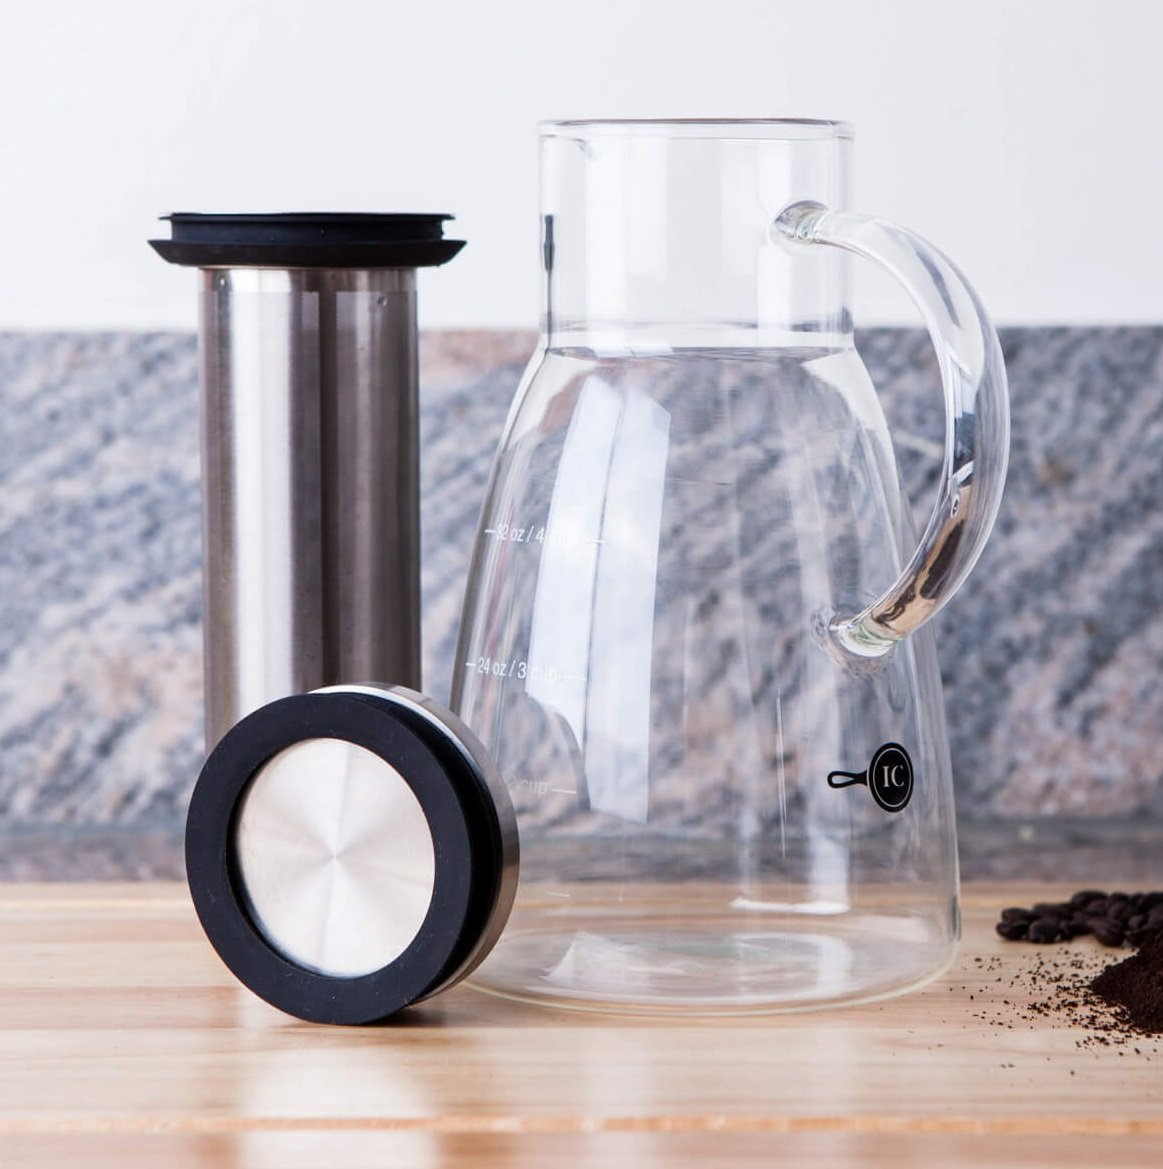 Cold Brew Coffee Maker & Tea Infuser Pot by Integrity Chef - 5 Cup Pitcher, Premium Food Grade Quality Stainless Steel & Glass Carafe, Perfect Gift, SAVE A LIFE!